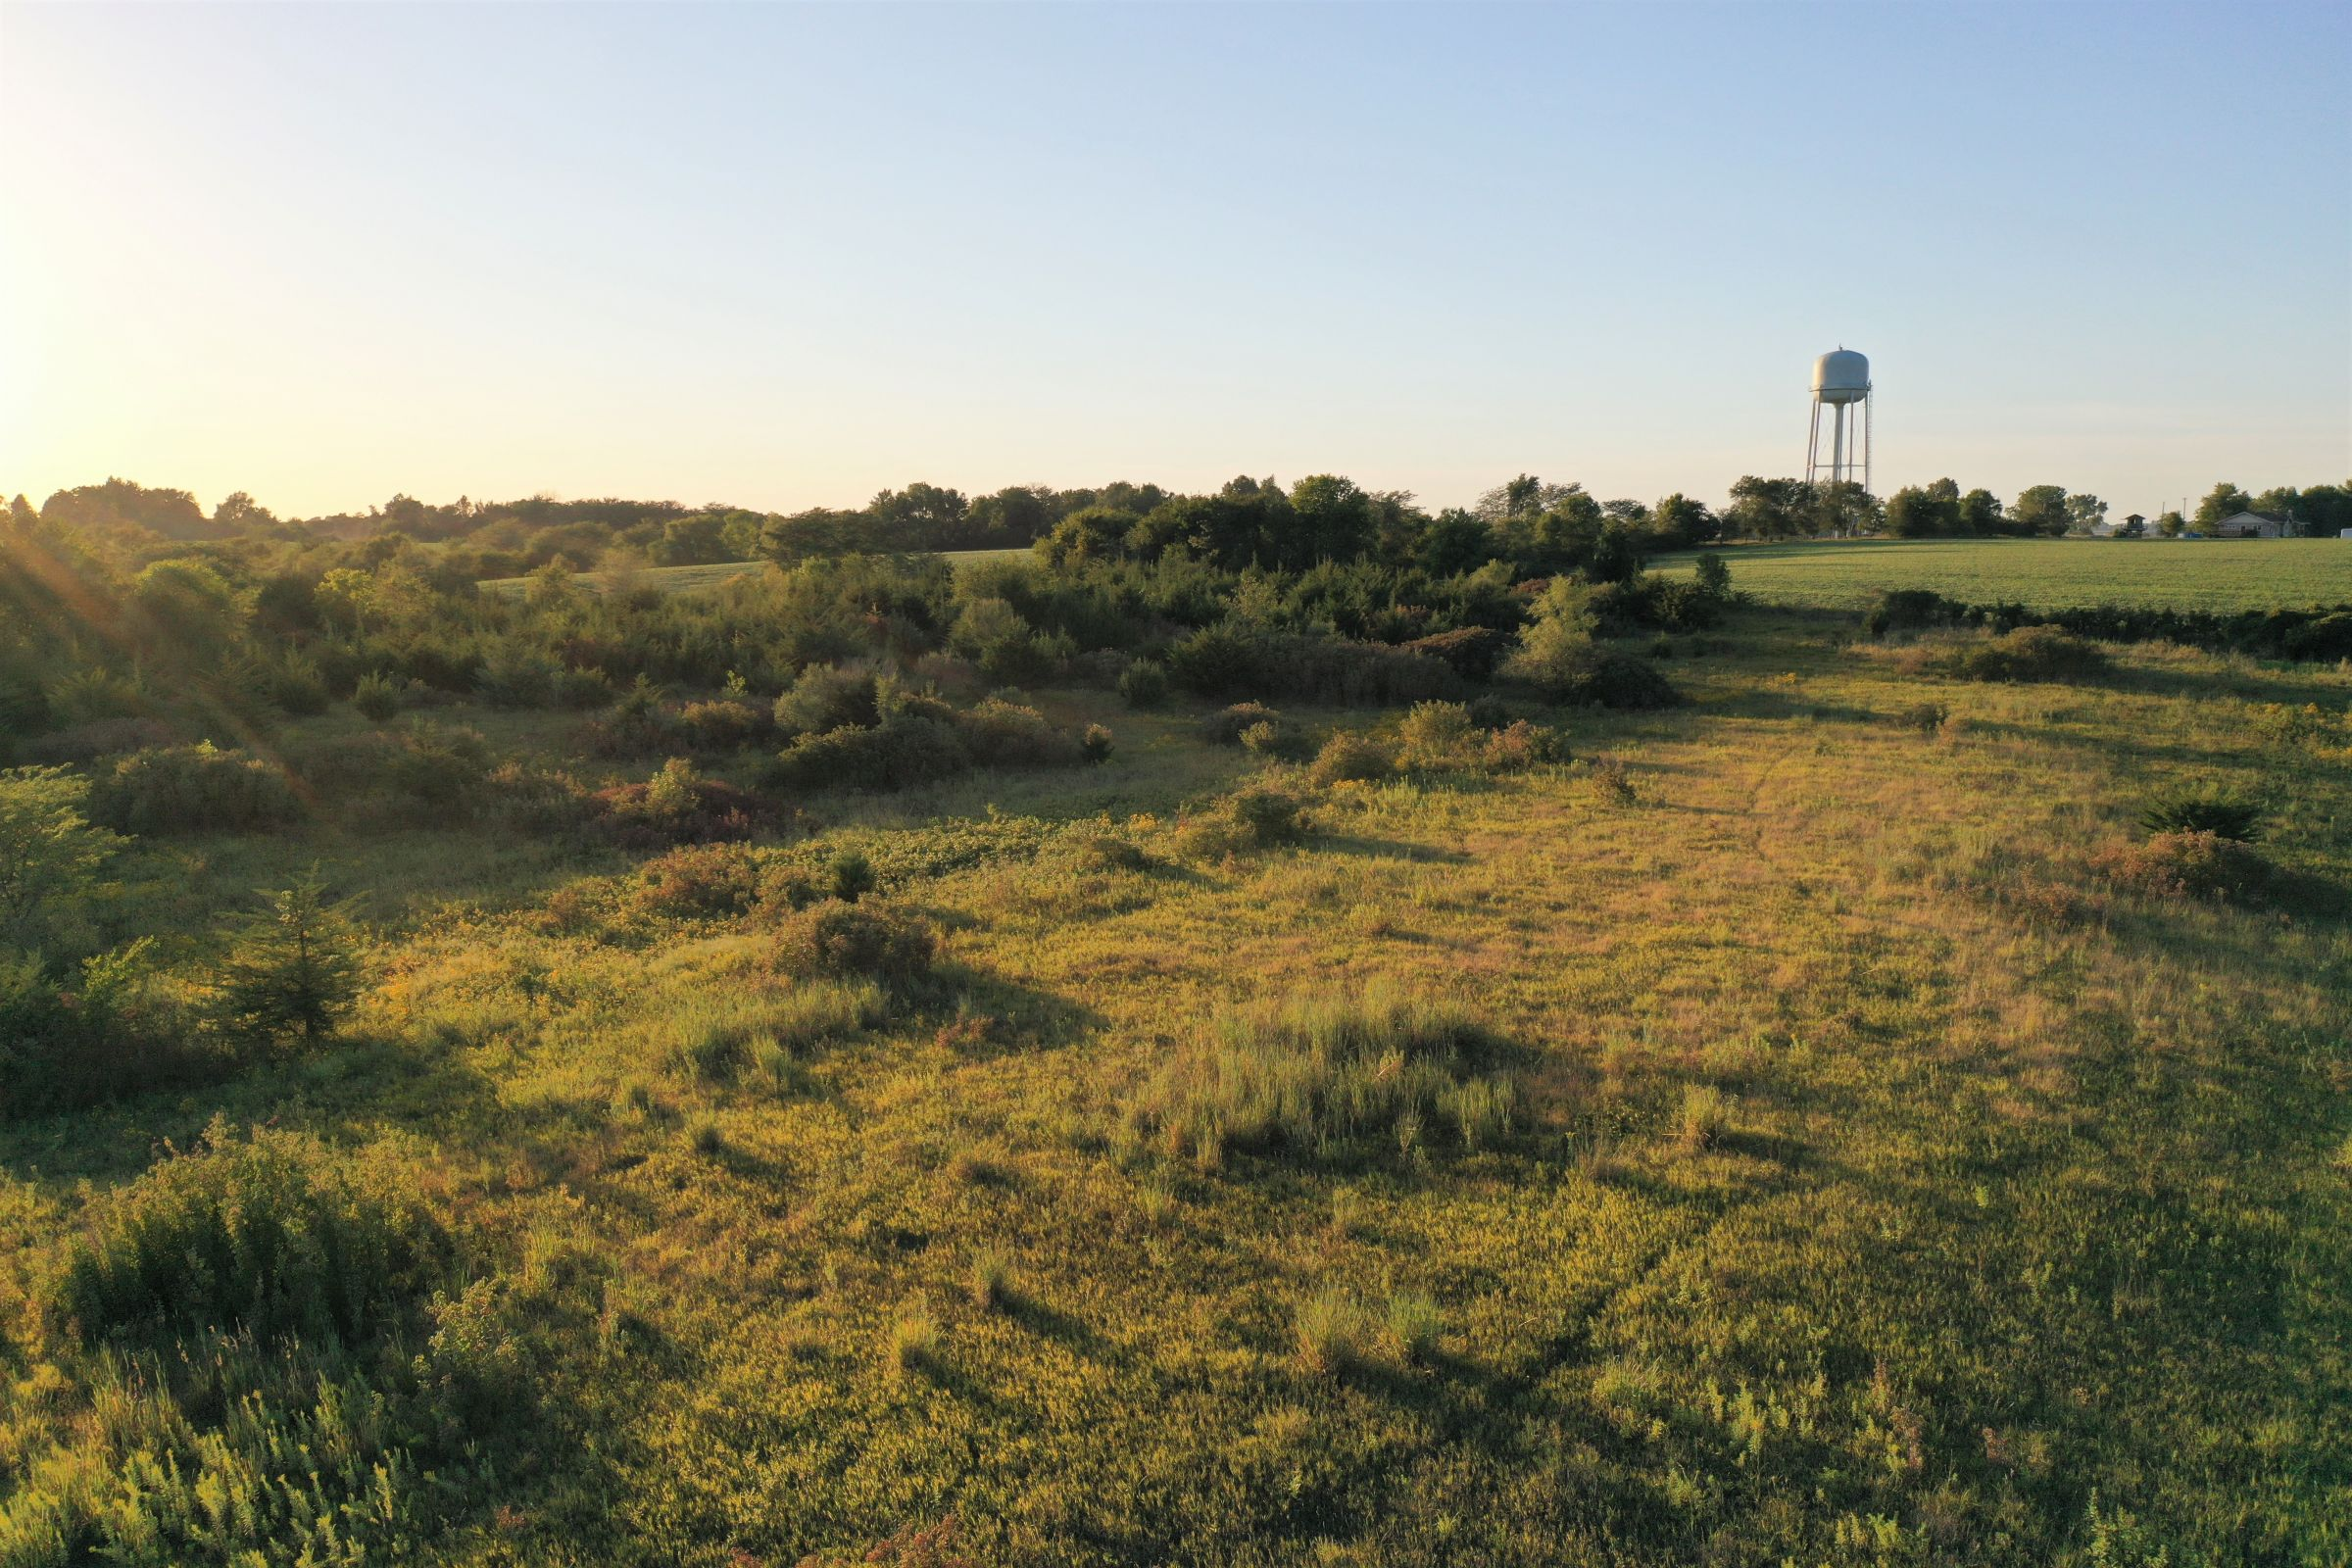 auctions-warren-county-iowa-84-acres-listing-number-15156-0-2020-09-02-043220.jpg